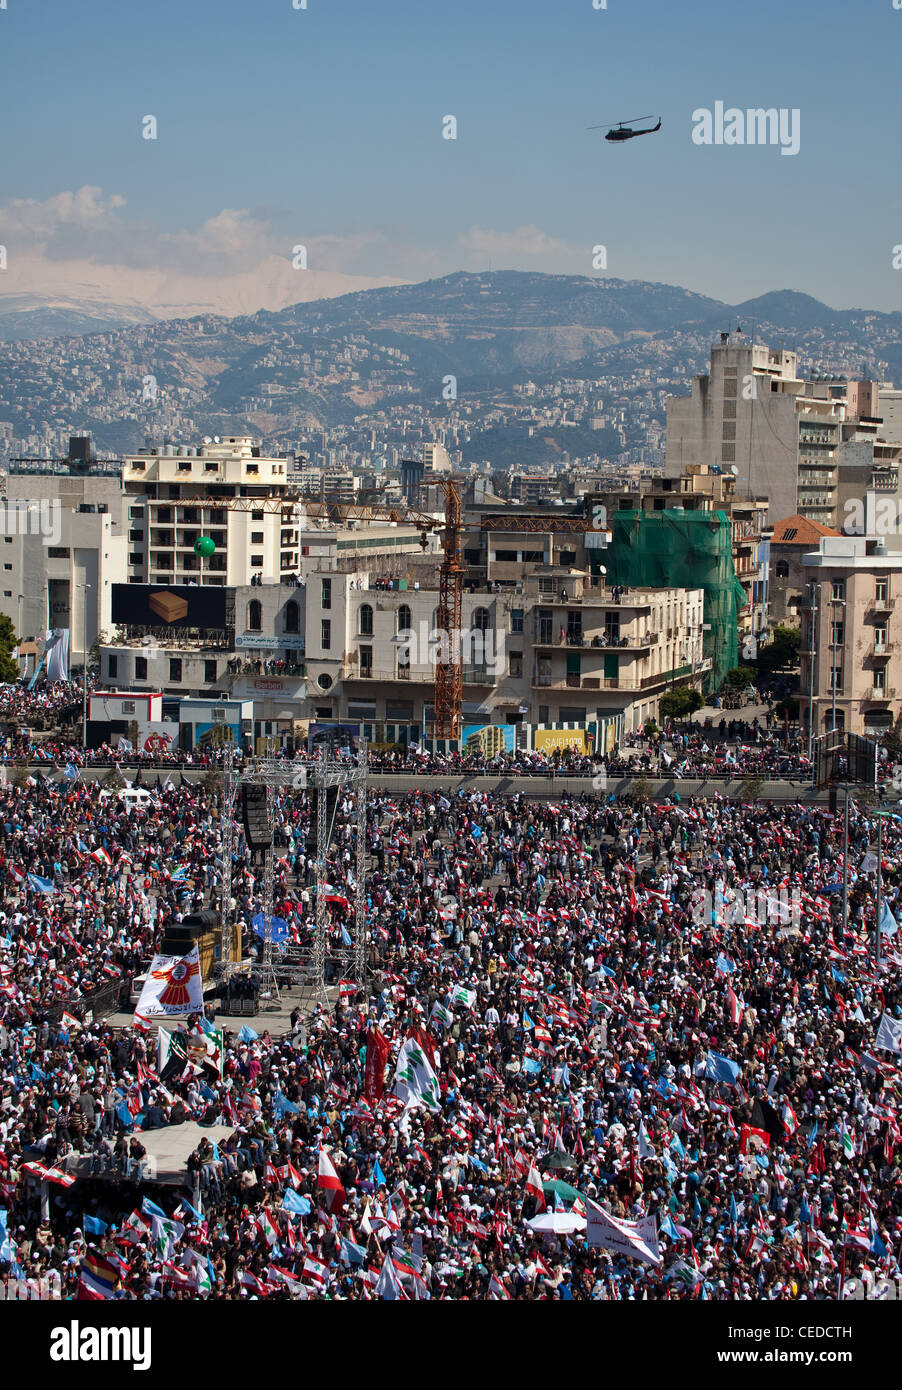 Up to a million people fill Martyrs Square in Beirut, Lebanon. Snow-capped mountains seen beyond city-centre towers Stock Photo